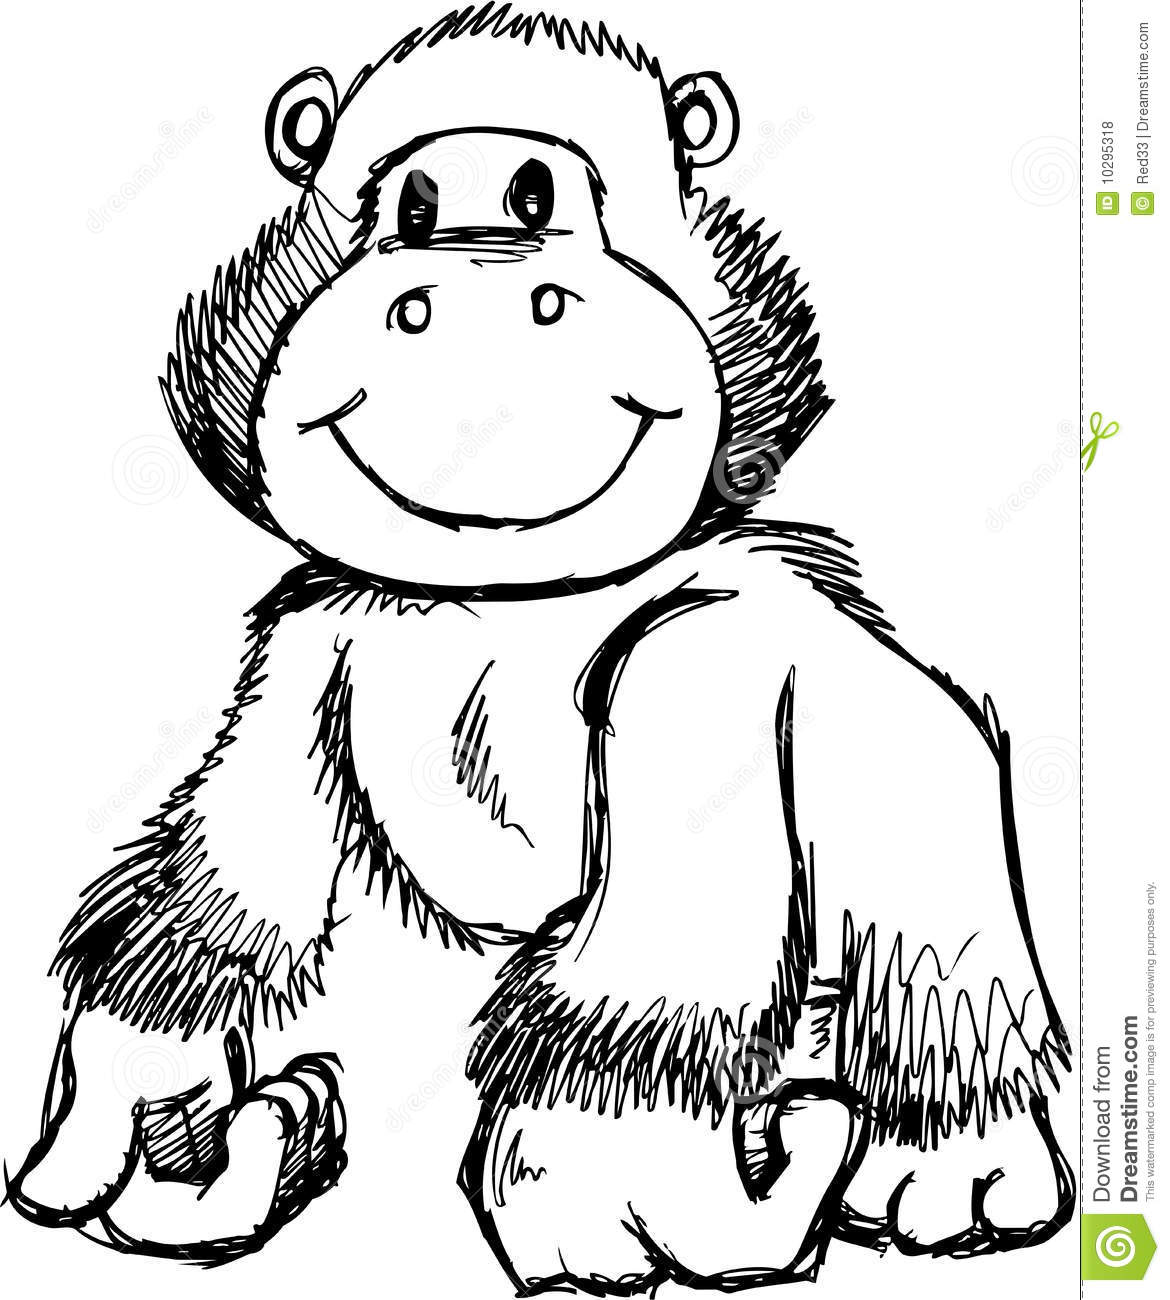 Cute Free Hometown Helpers Black And White Clipart.